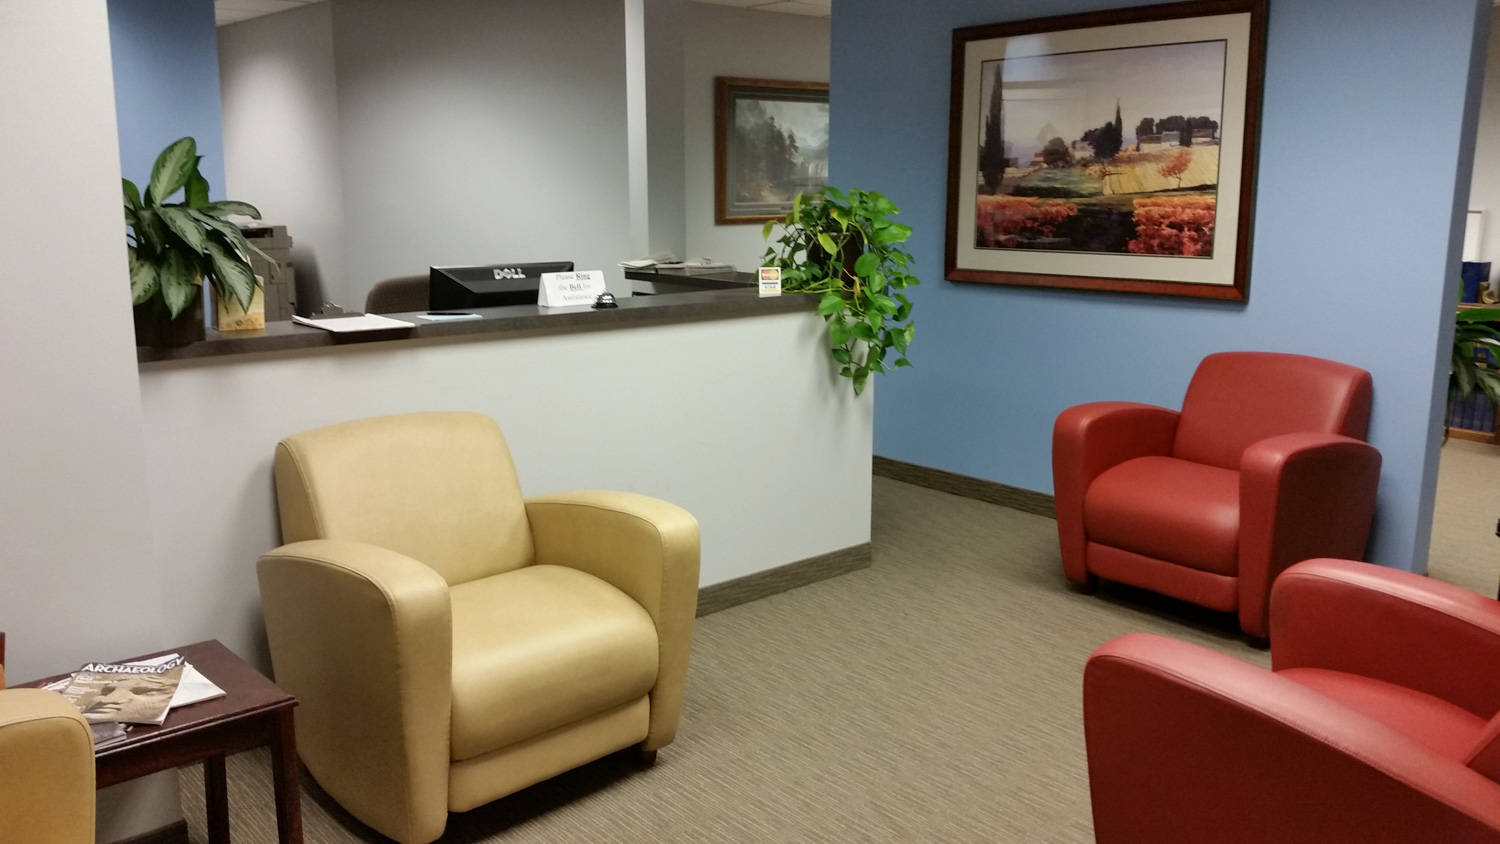 Reception area at Monaco Sanders, LLC